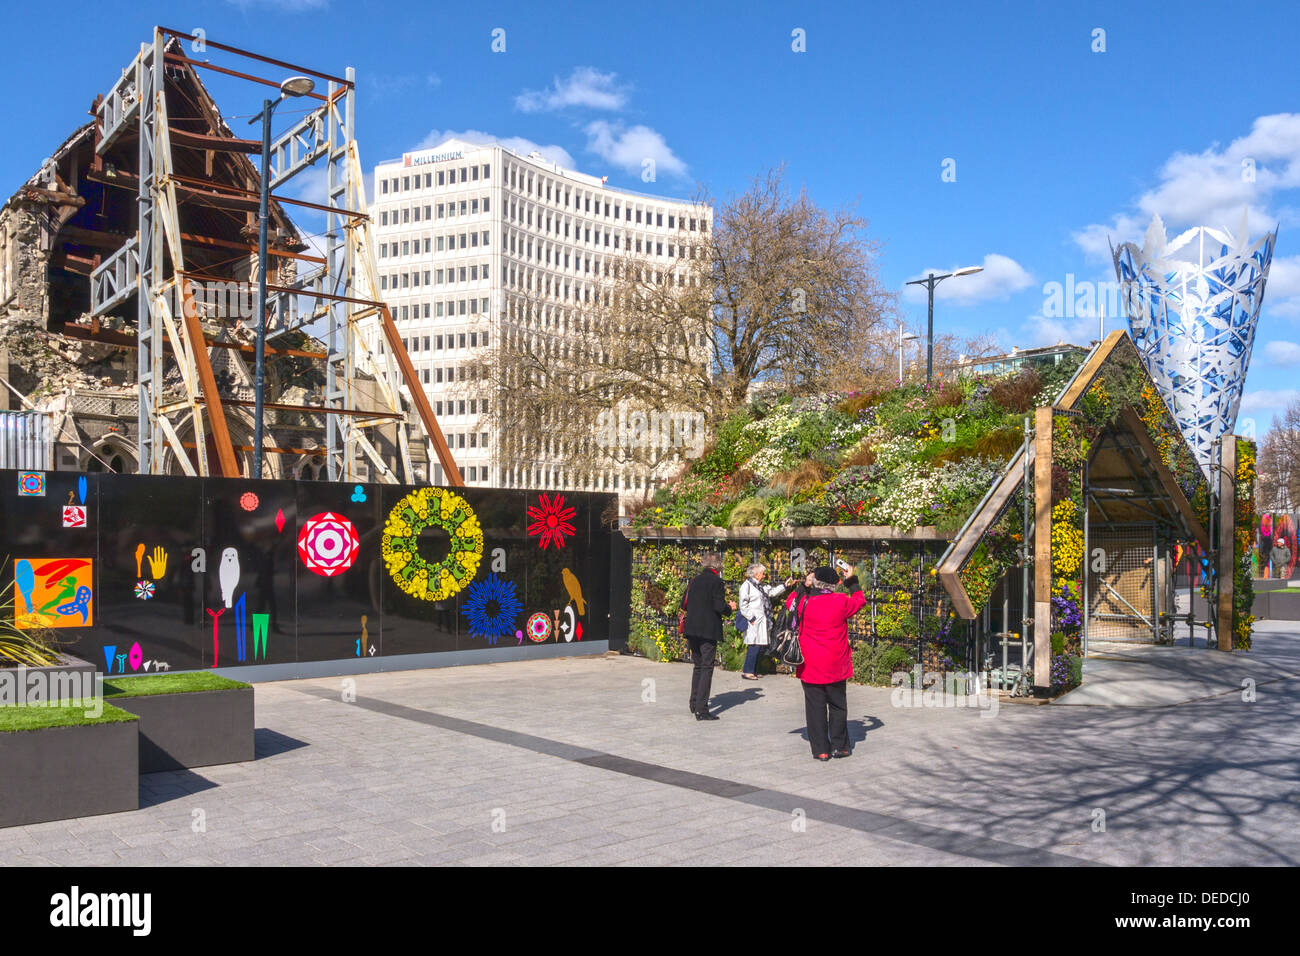 Cathedral Square, Christchurch, New Zealand, early spring 2013, with the green or living roof... - Stock Image